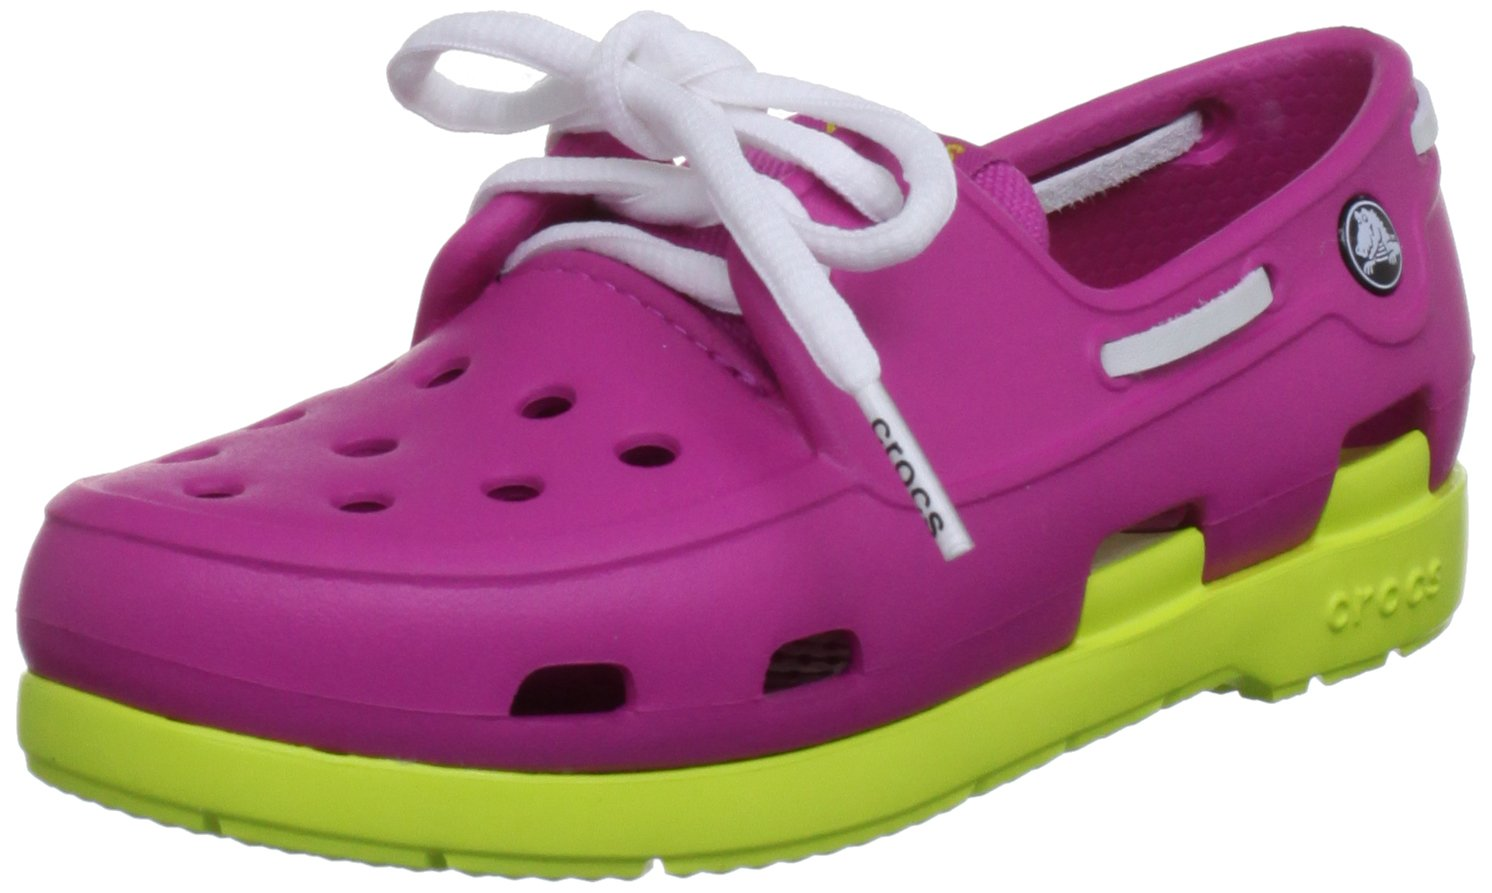 crocs 14404 Beach Line Shoe (Toddler/Little Kid),Fuchsia/Citrus,11 M US Little Kid